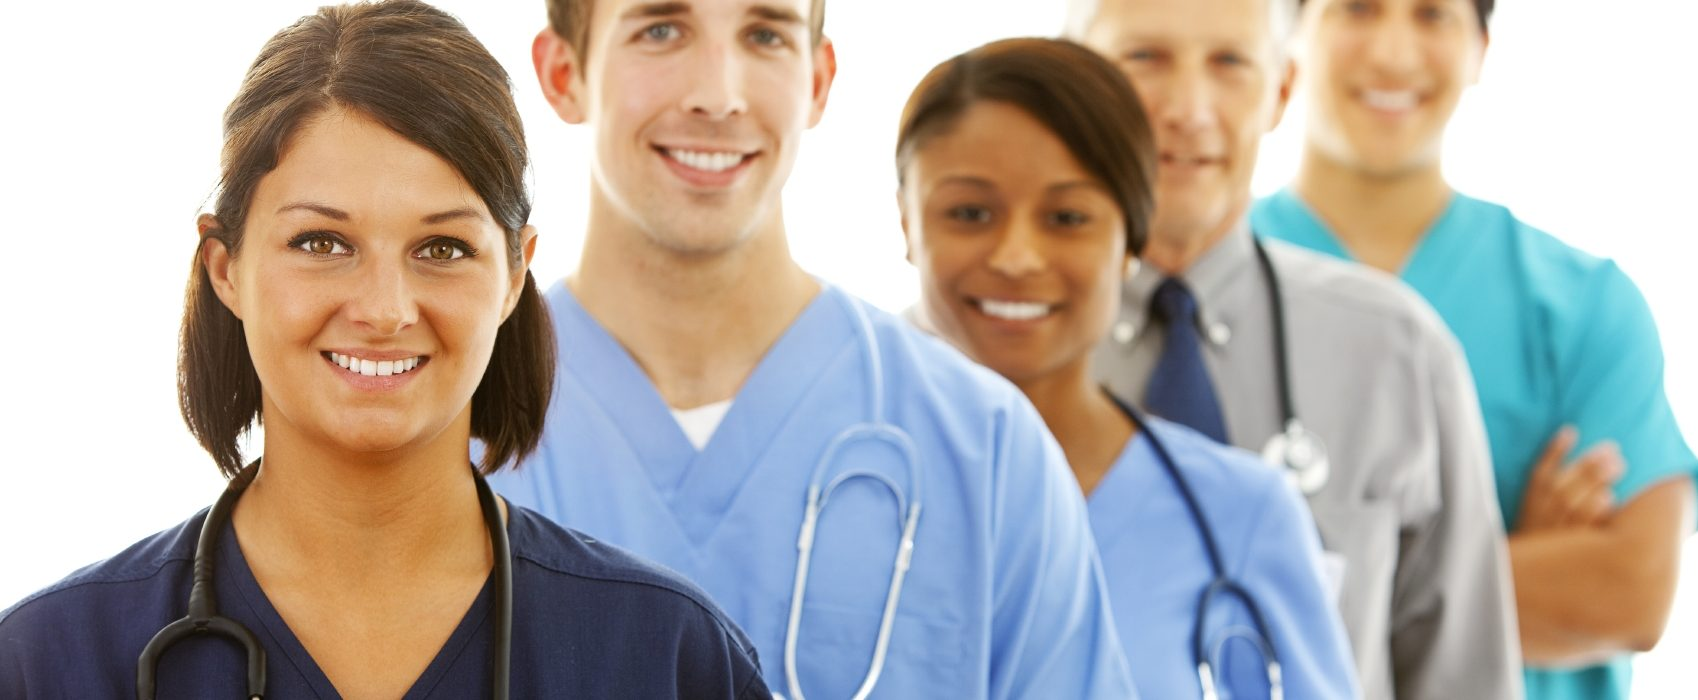 your-medical-team-1698x700.jpg